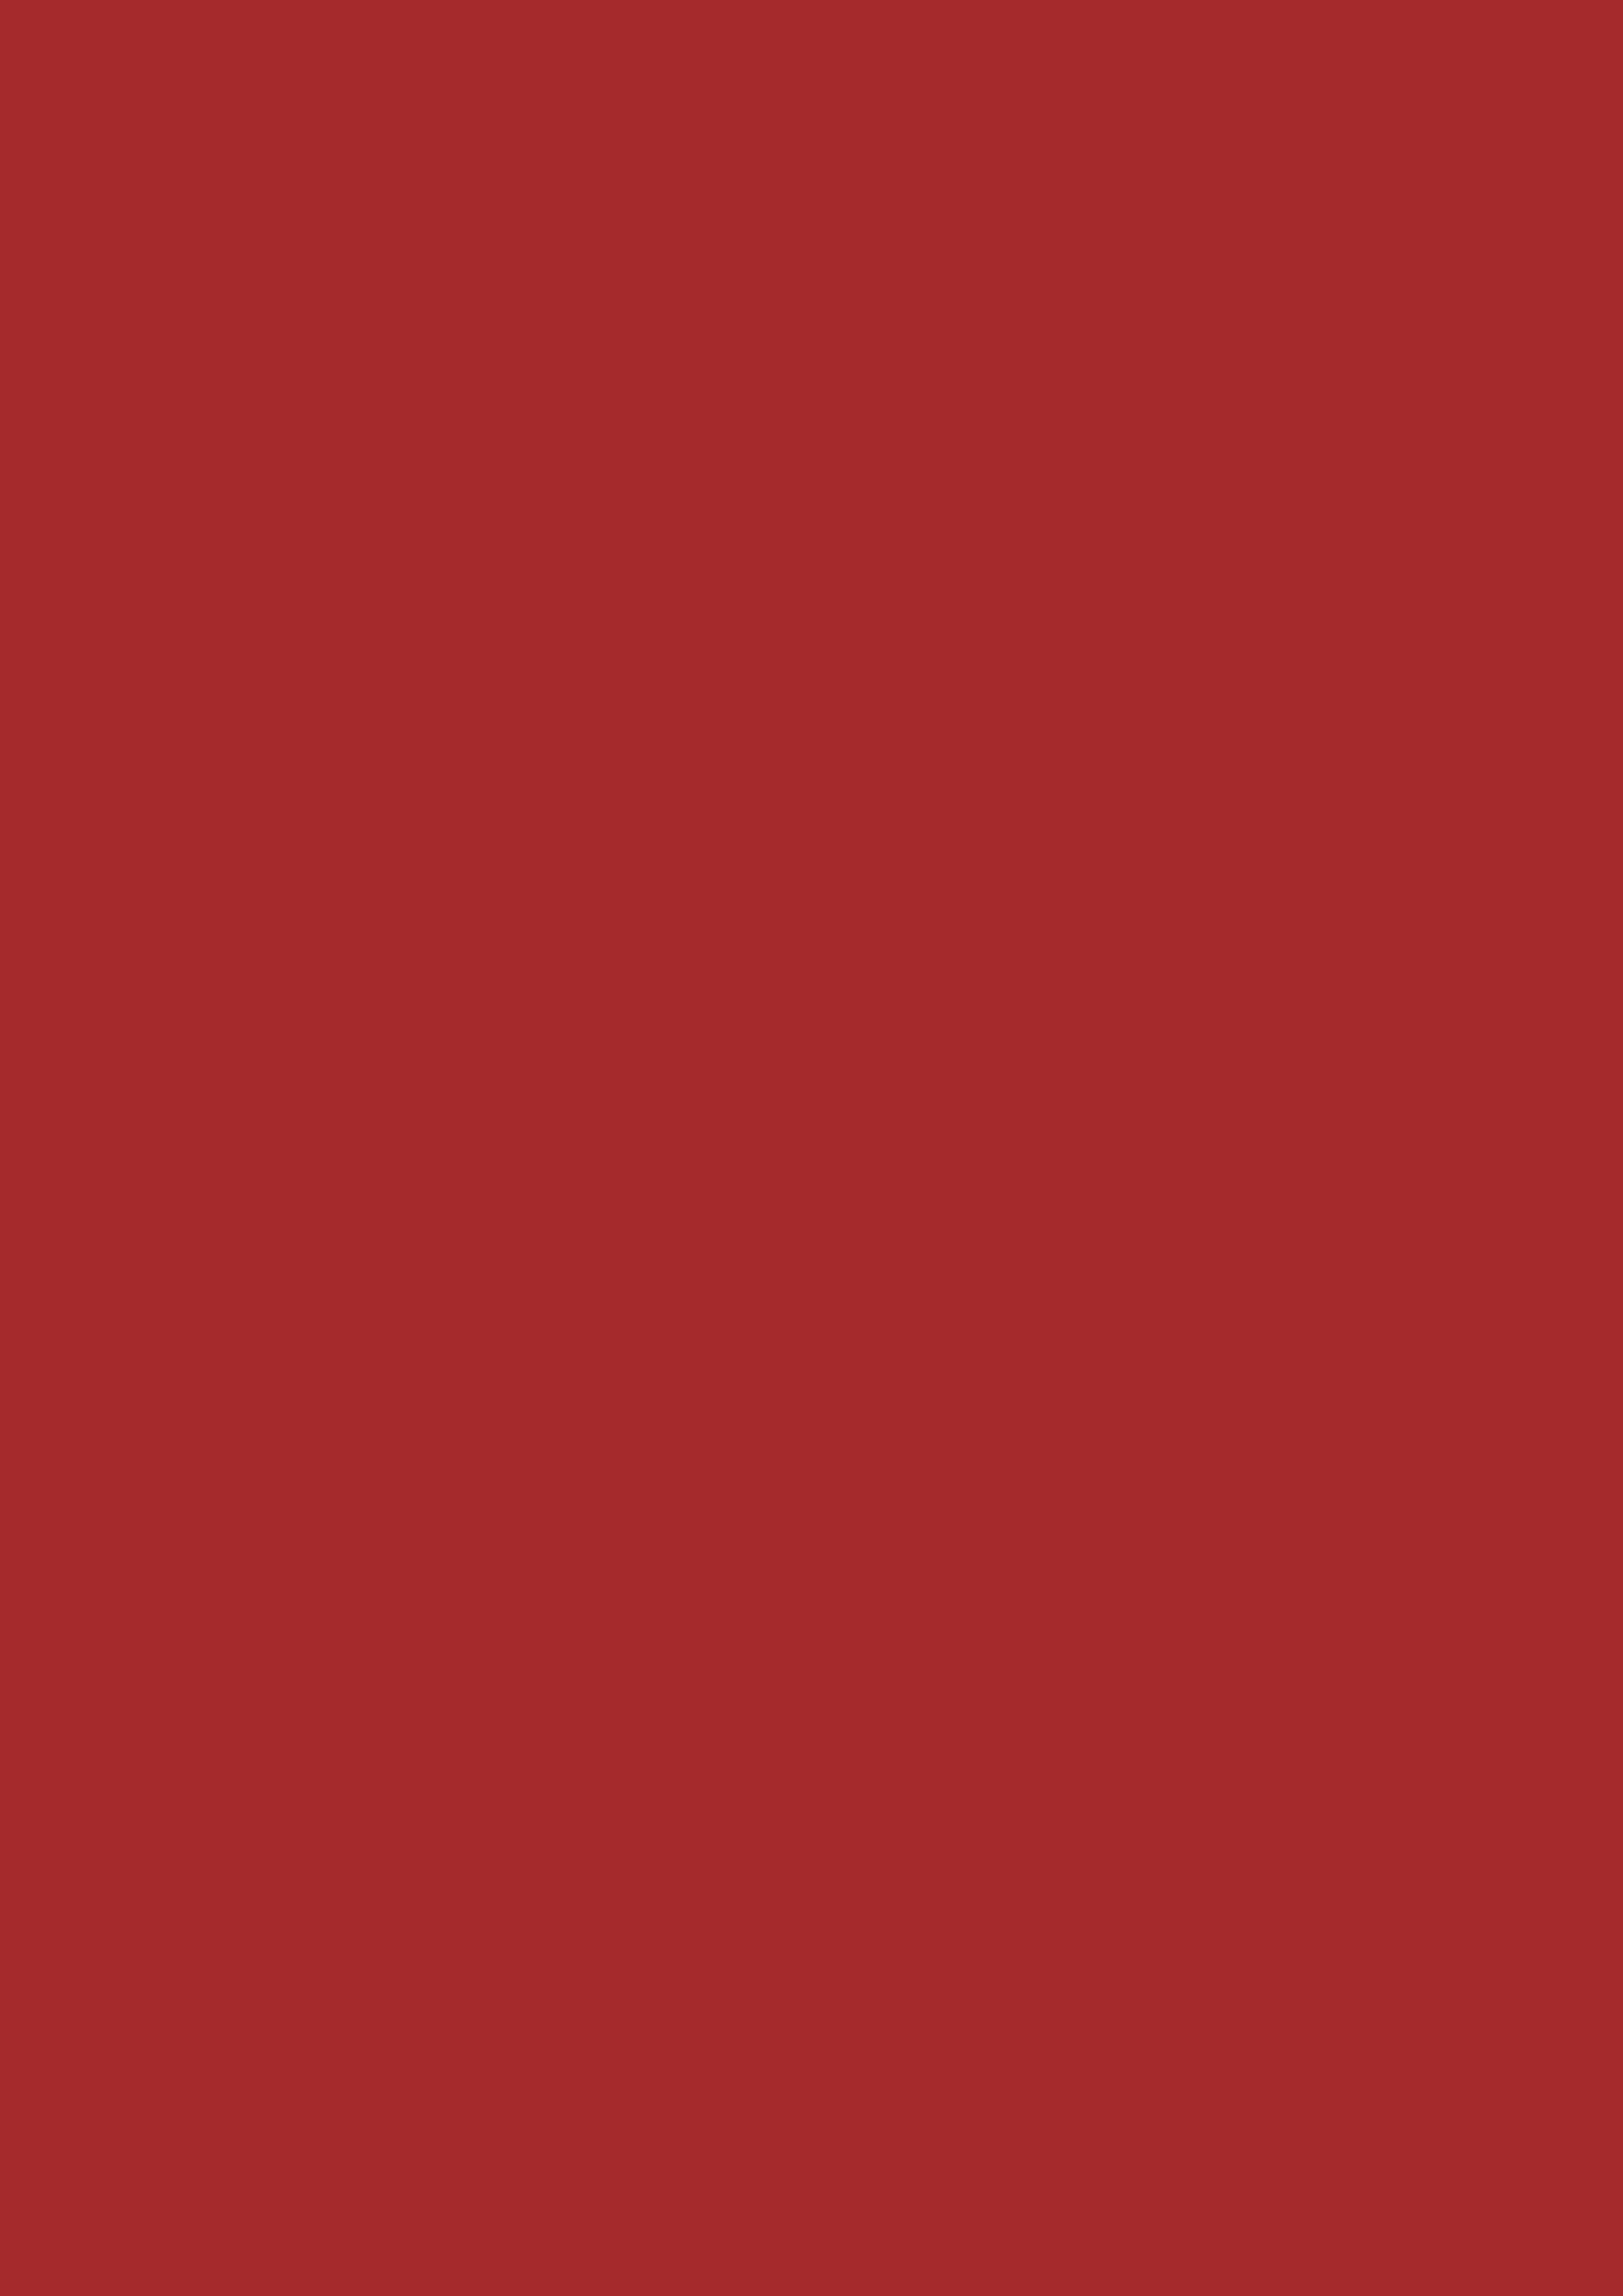 2480x3508 Red-brown Solid Color Background